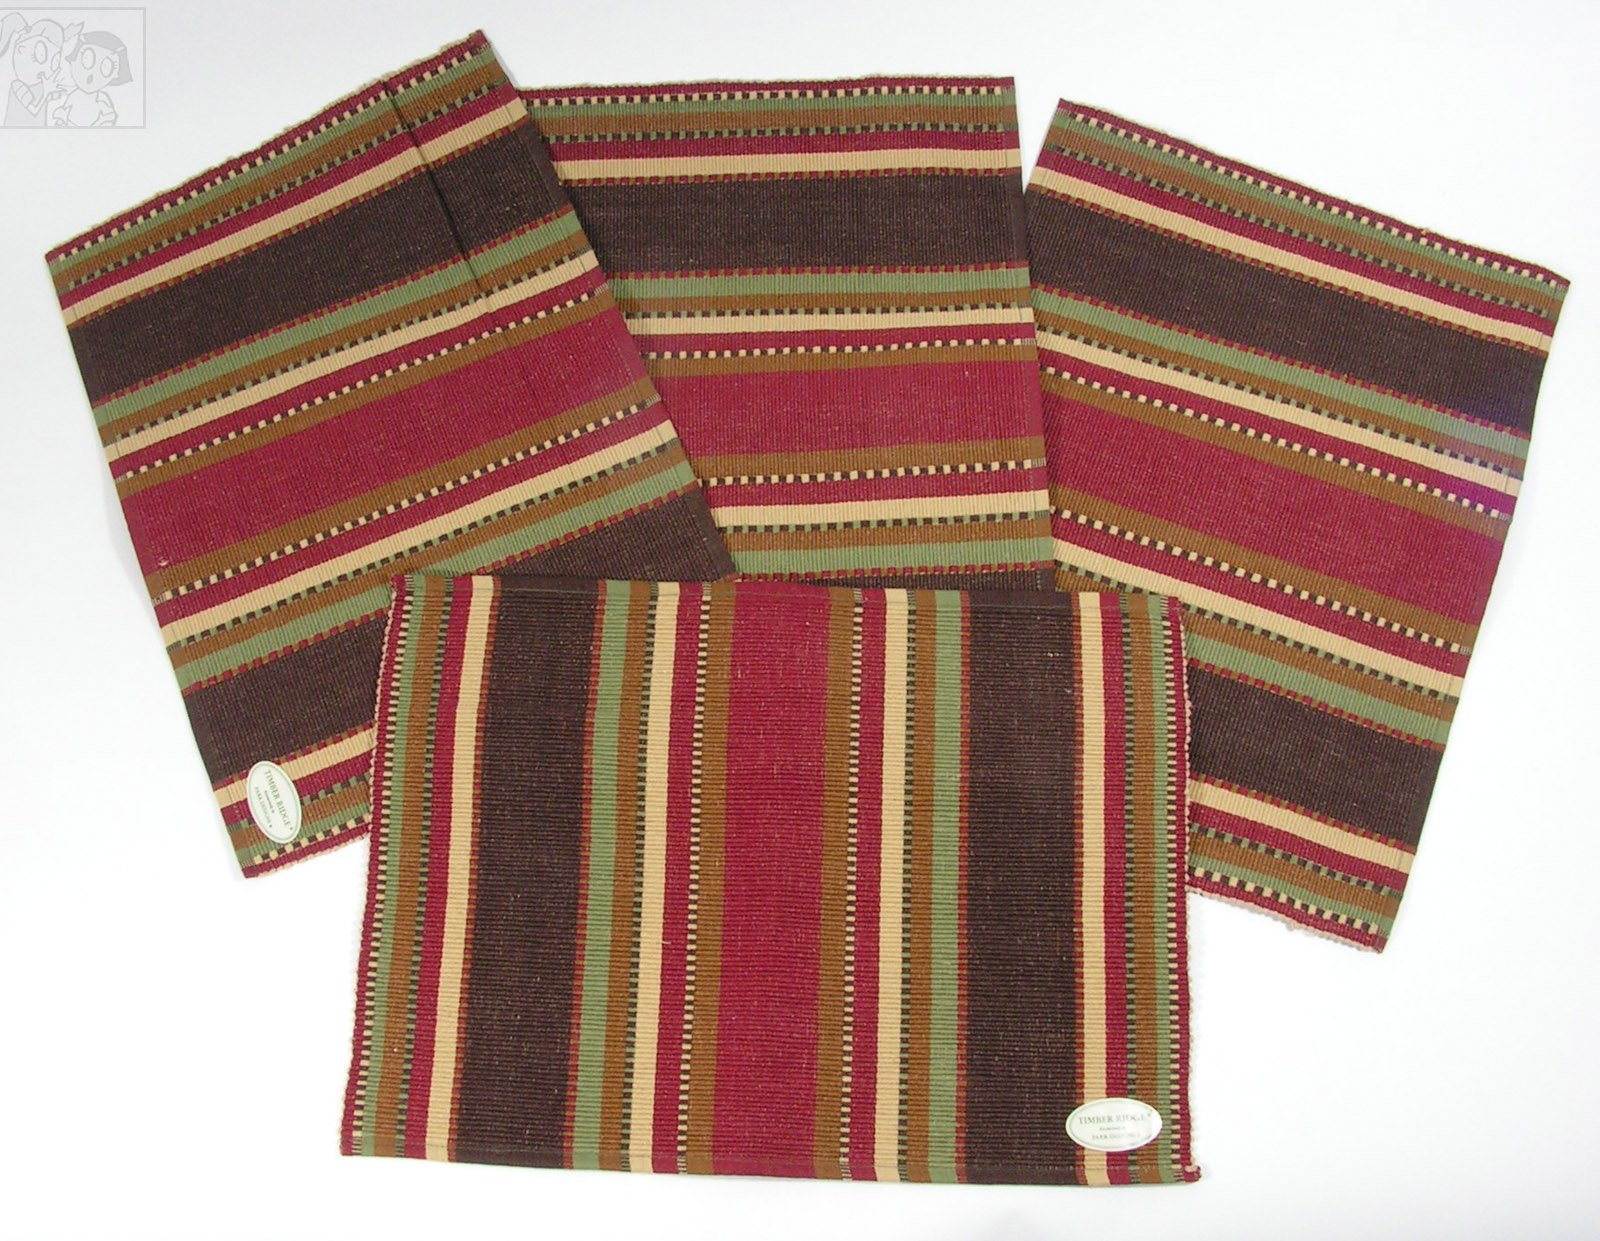 Timber Ridge Placemats Set of 4 by Creative Home Accents, Brown, 13x19 inches - Set of 4 Timber Ridge Striped Design Placemats Park Designs Southwestern Flair Timber Ridge Placemats Colors of tan, brown, brick reds and green - placemats, kitchen-dining-room-table-linens, kitchen-dining-room - 812cfiIPTsL -